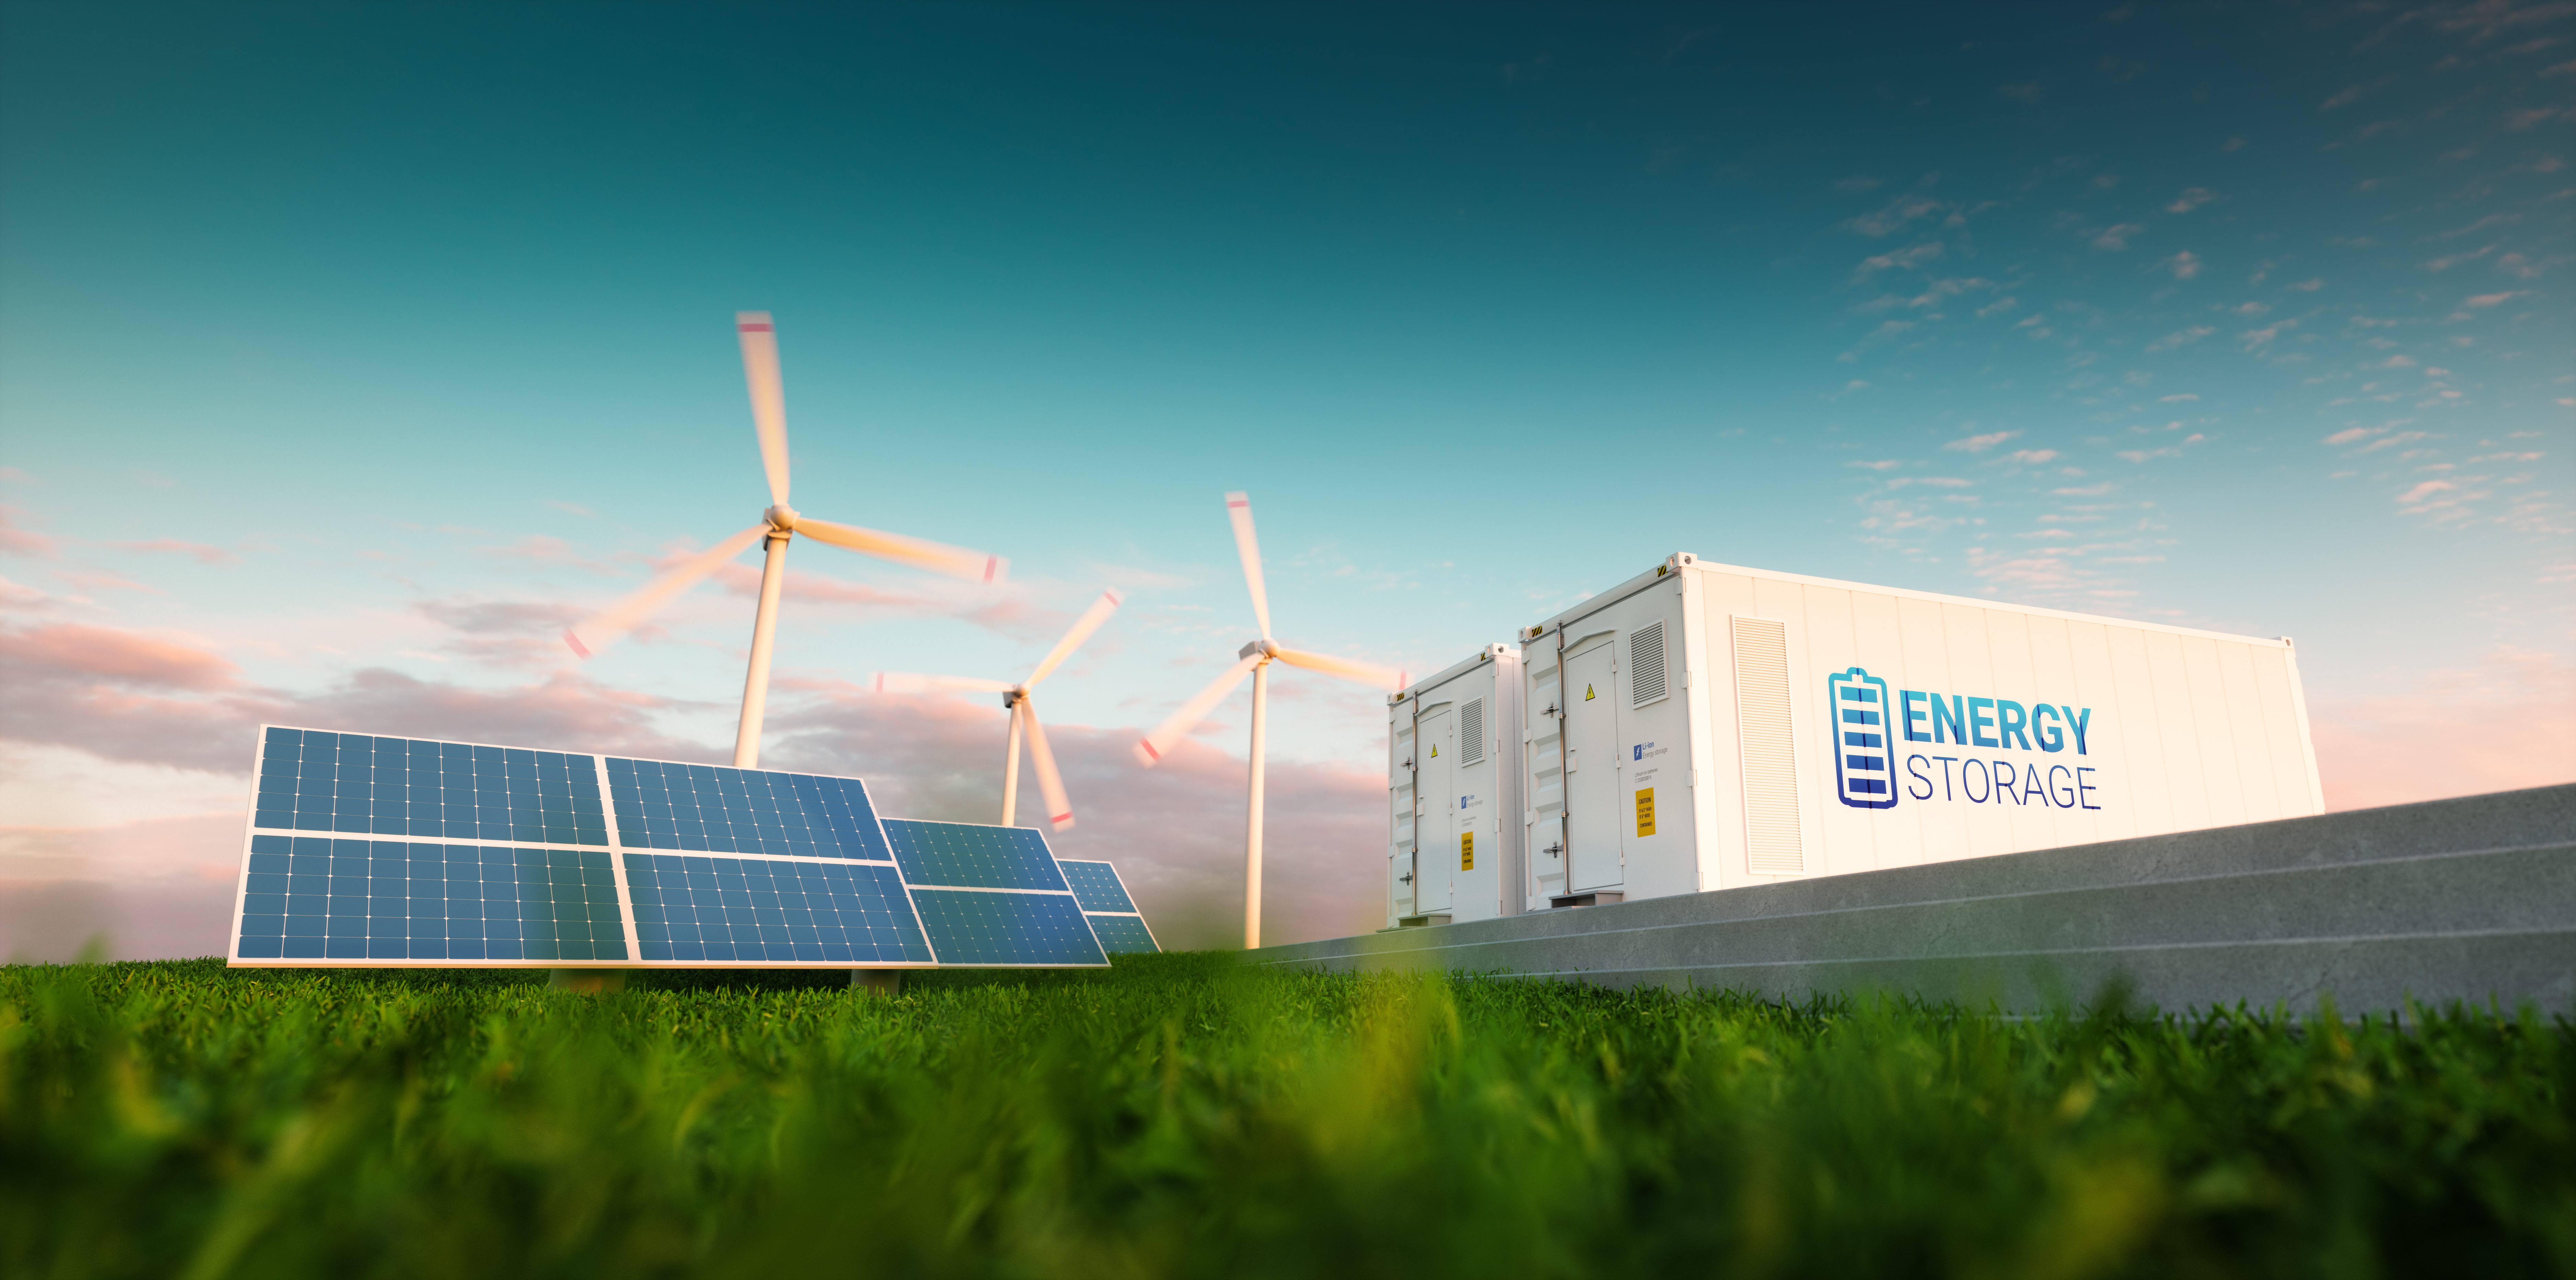 Getting to 100% renewables requires cheap energy storage. But how cheap?